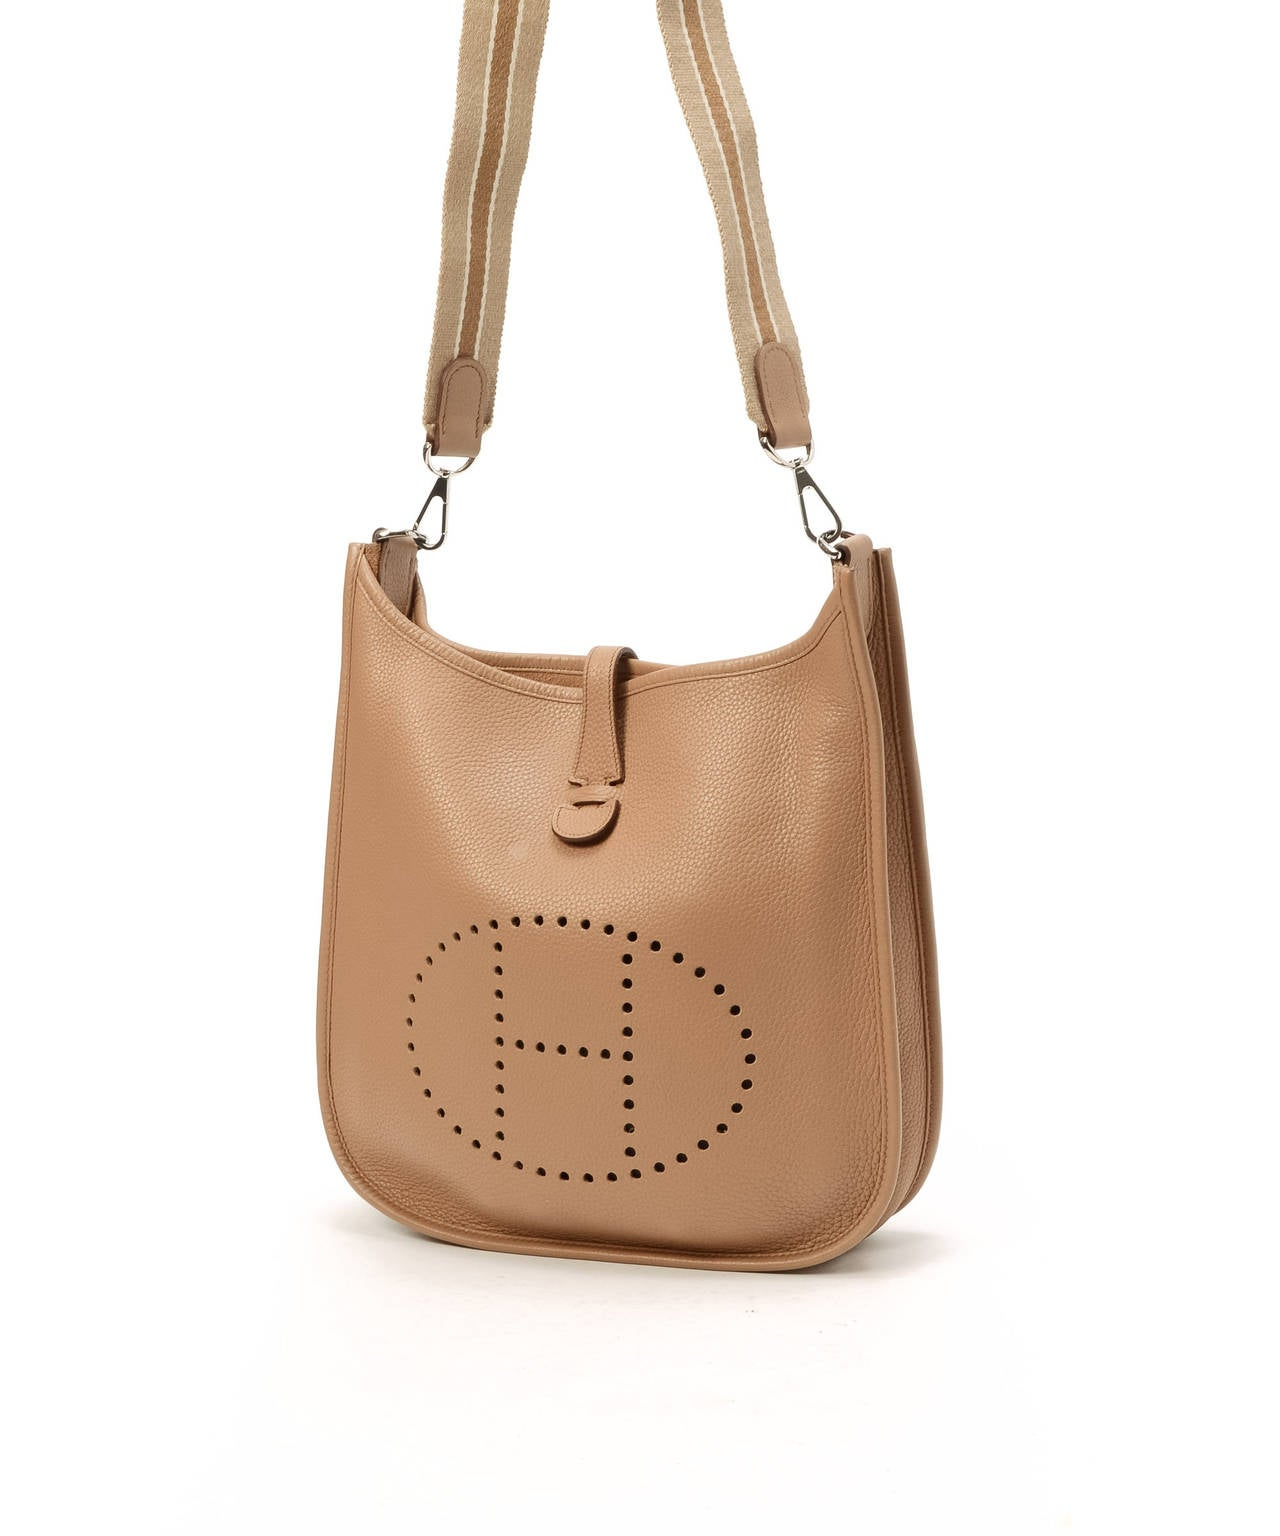 so kelly hermes bag - Herm��s Tabac-Camel Evelyne II PM in Taurillon Cl��mence at 1stdibs